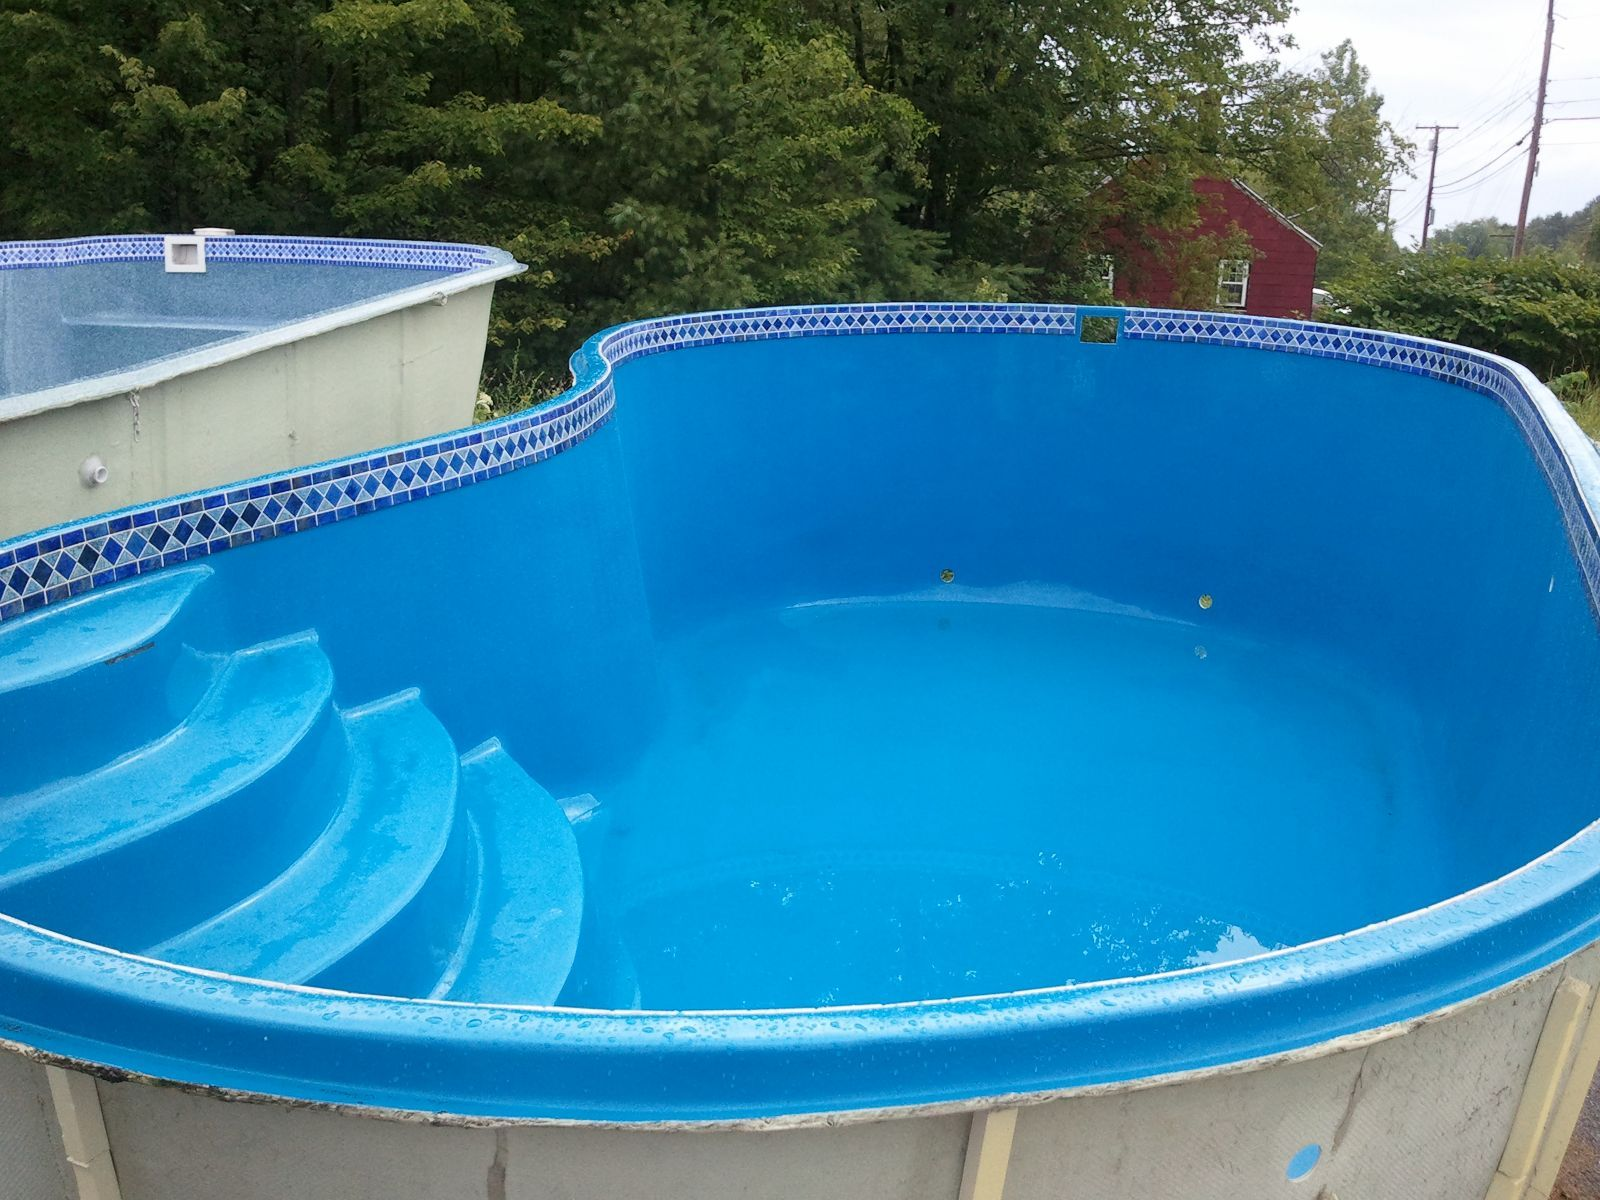 Awesome Kidney Shaped Above Ground Pool in Blue Hues | In ...